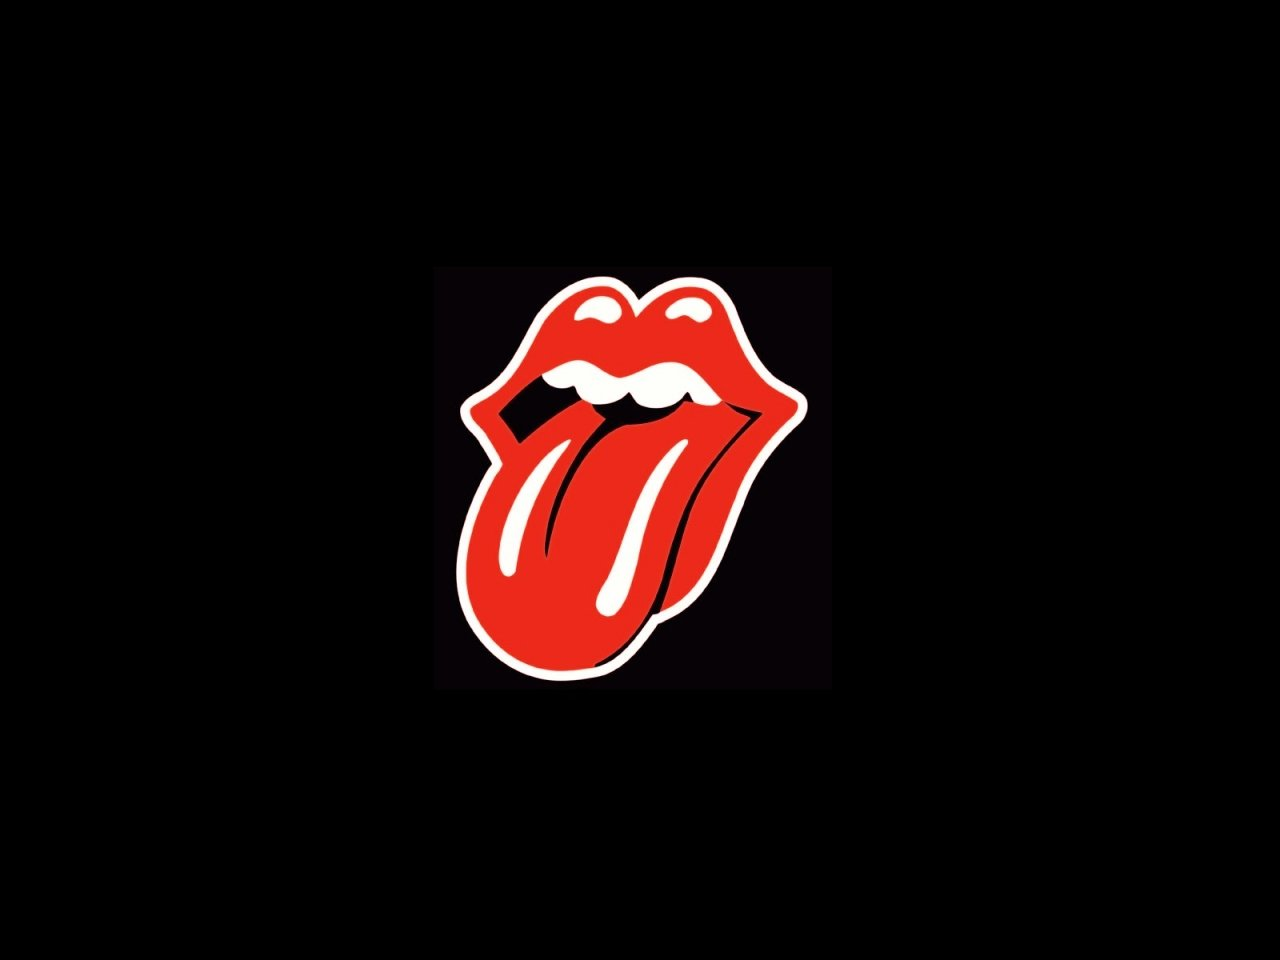 Awesome The Rolling Stones wallpaper